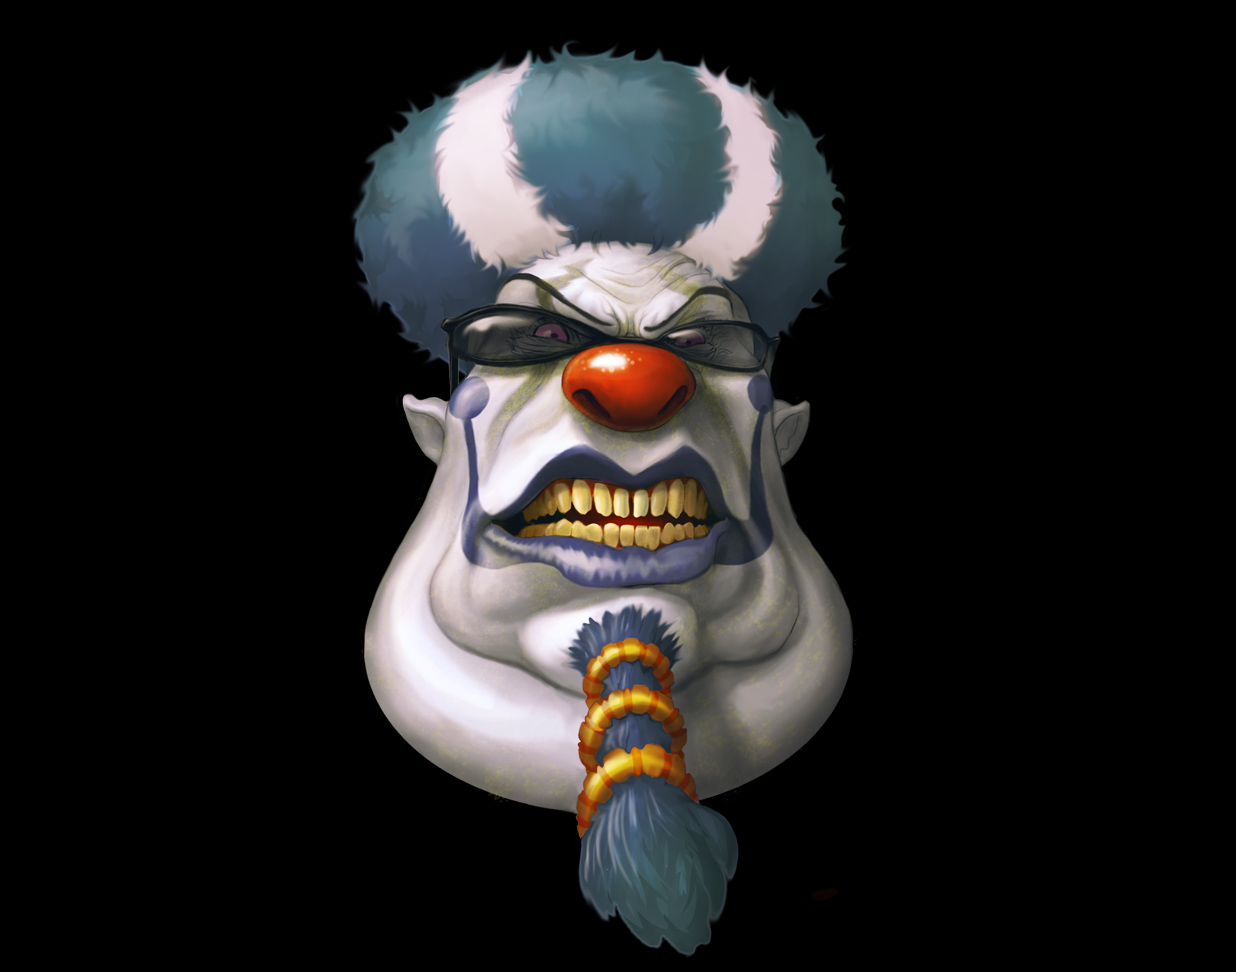 http://1.bp.blogspot.com/-Z0fD1HFH0Wc/TkgiKEPWcfI/AAAAAAAATCs/3HLGAHxus_Q/s1600/scary+clown+wallpaper-3.jpg